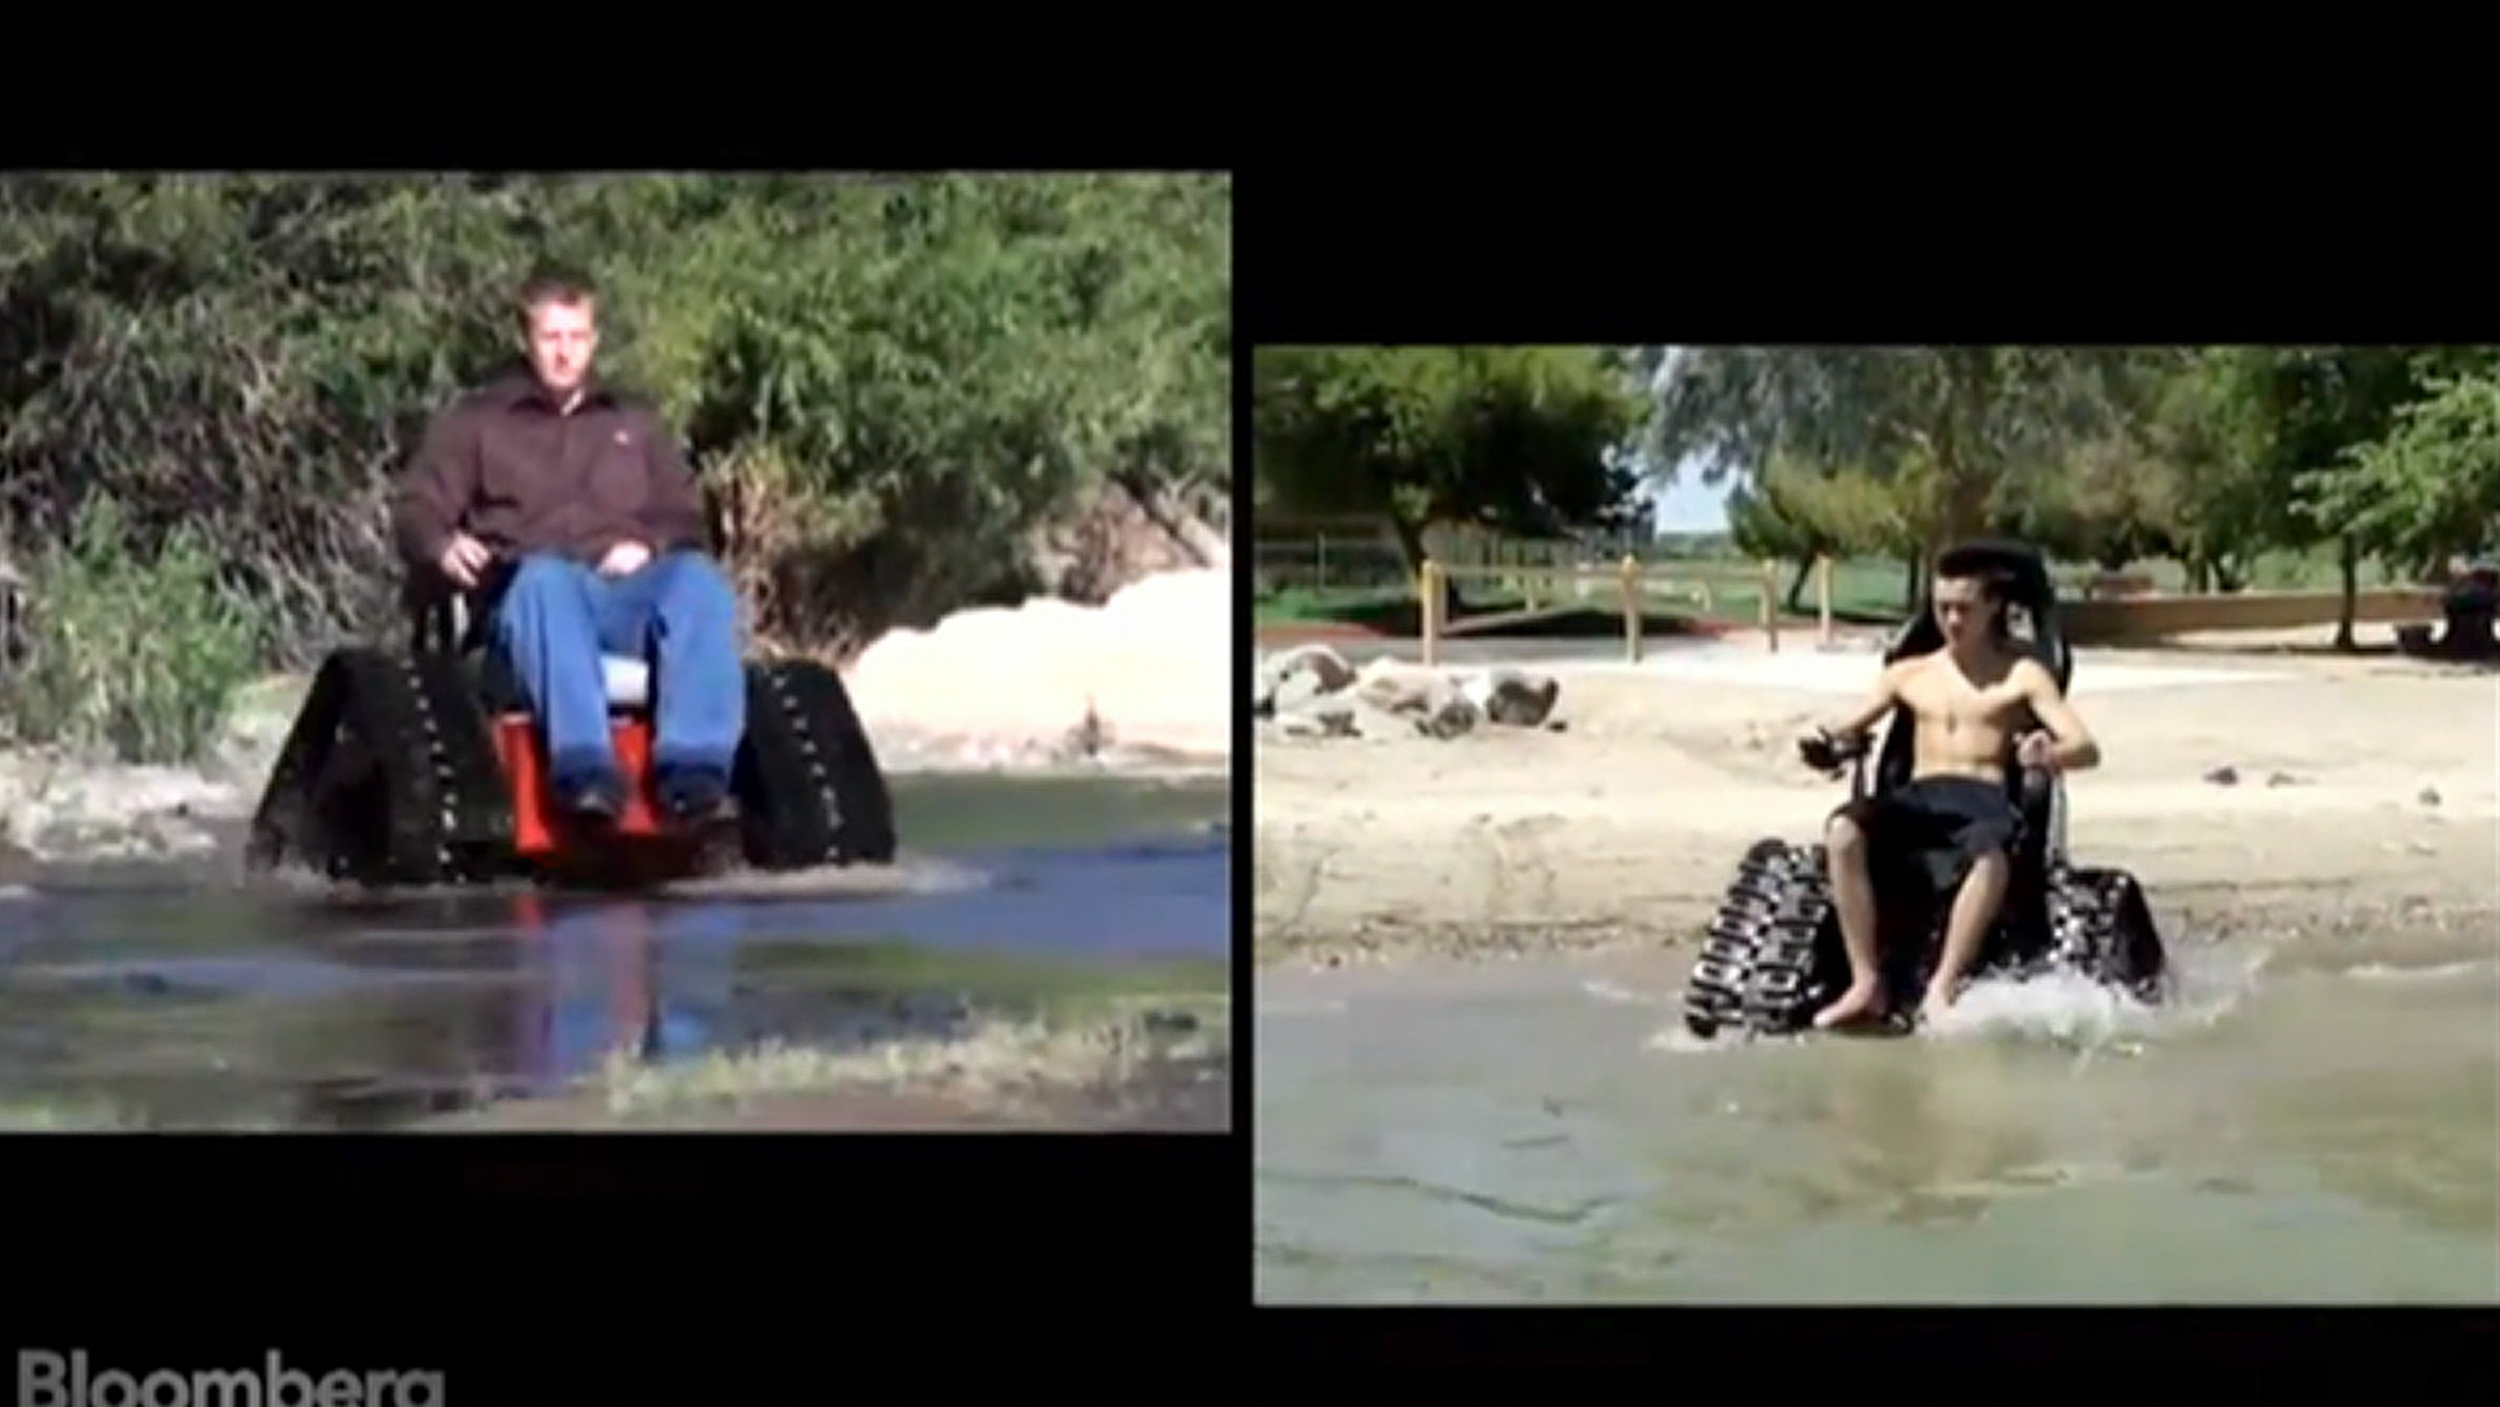 & Veteran invents tank-wheelchair to help his paralyzed wife